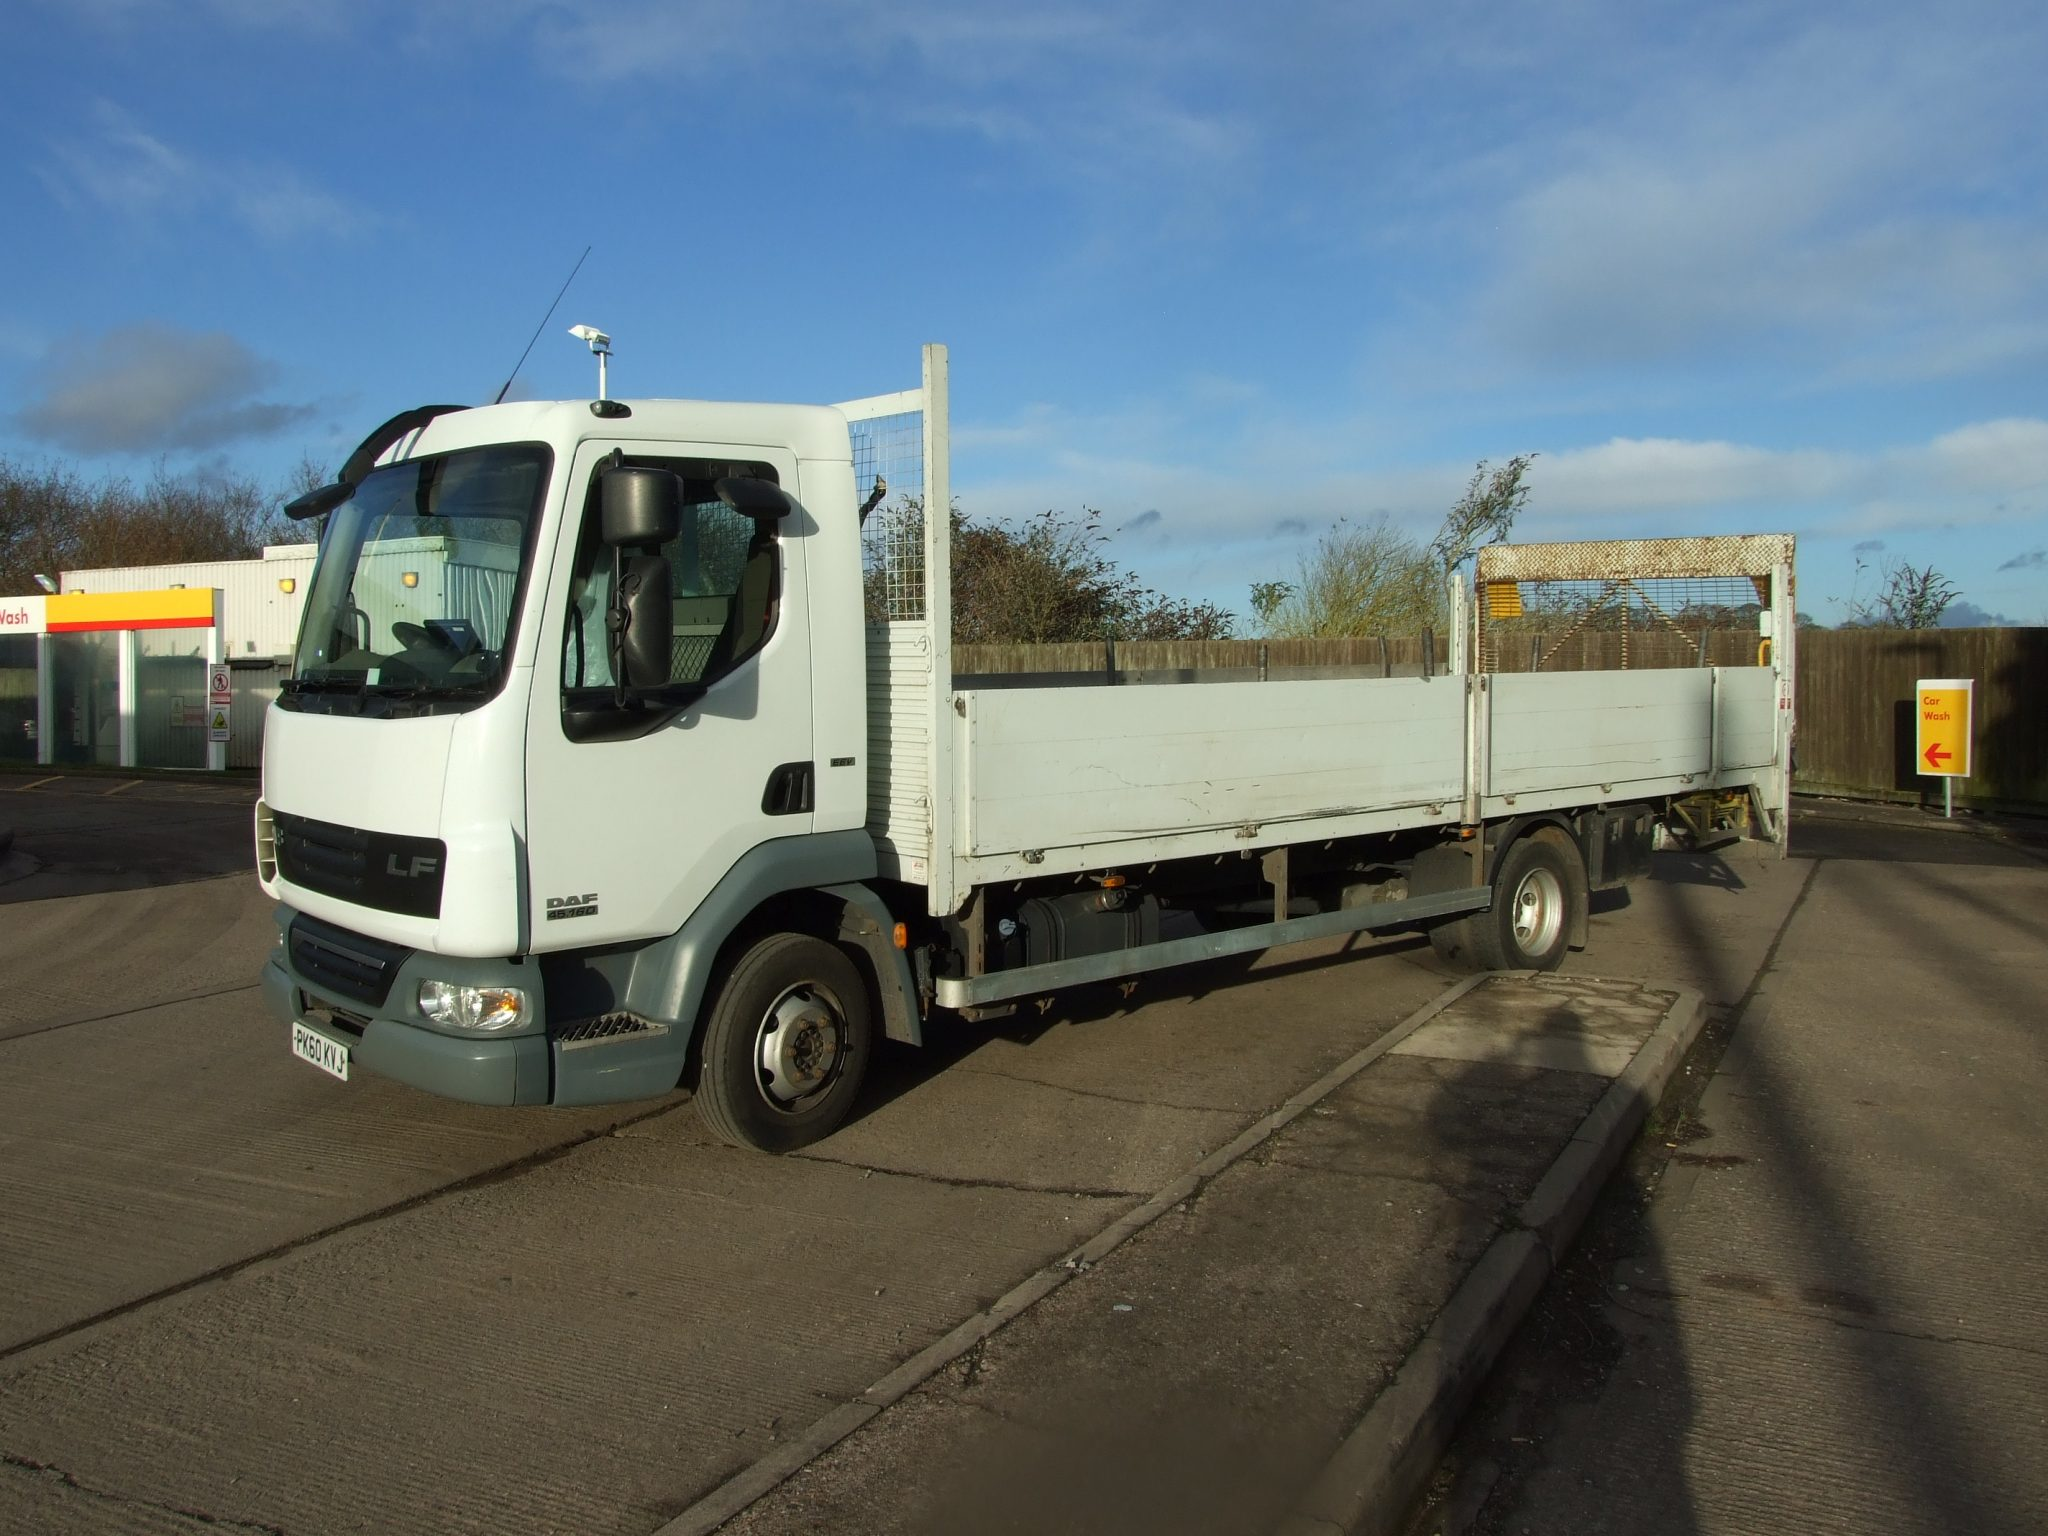 Mercedes Benz Of West Chester >> DAF 45 160 22.3FT DROPSIDE - Cromwell Trucks